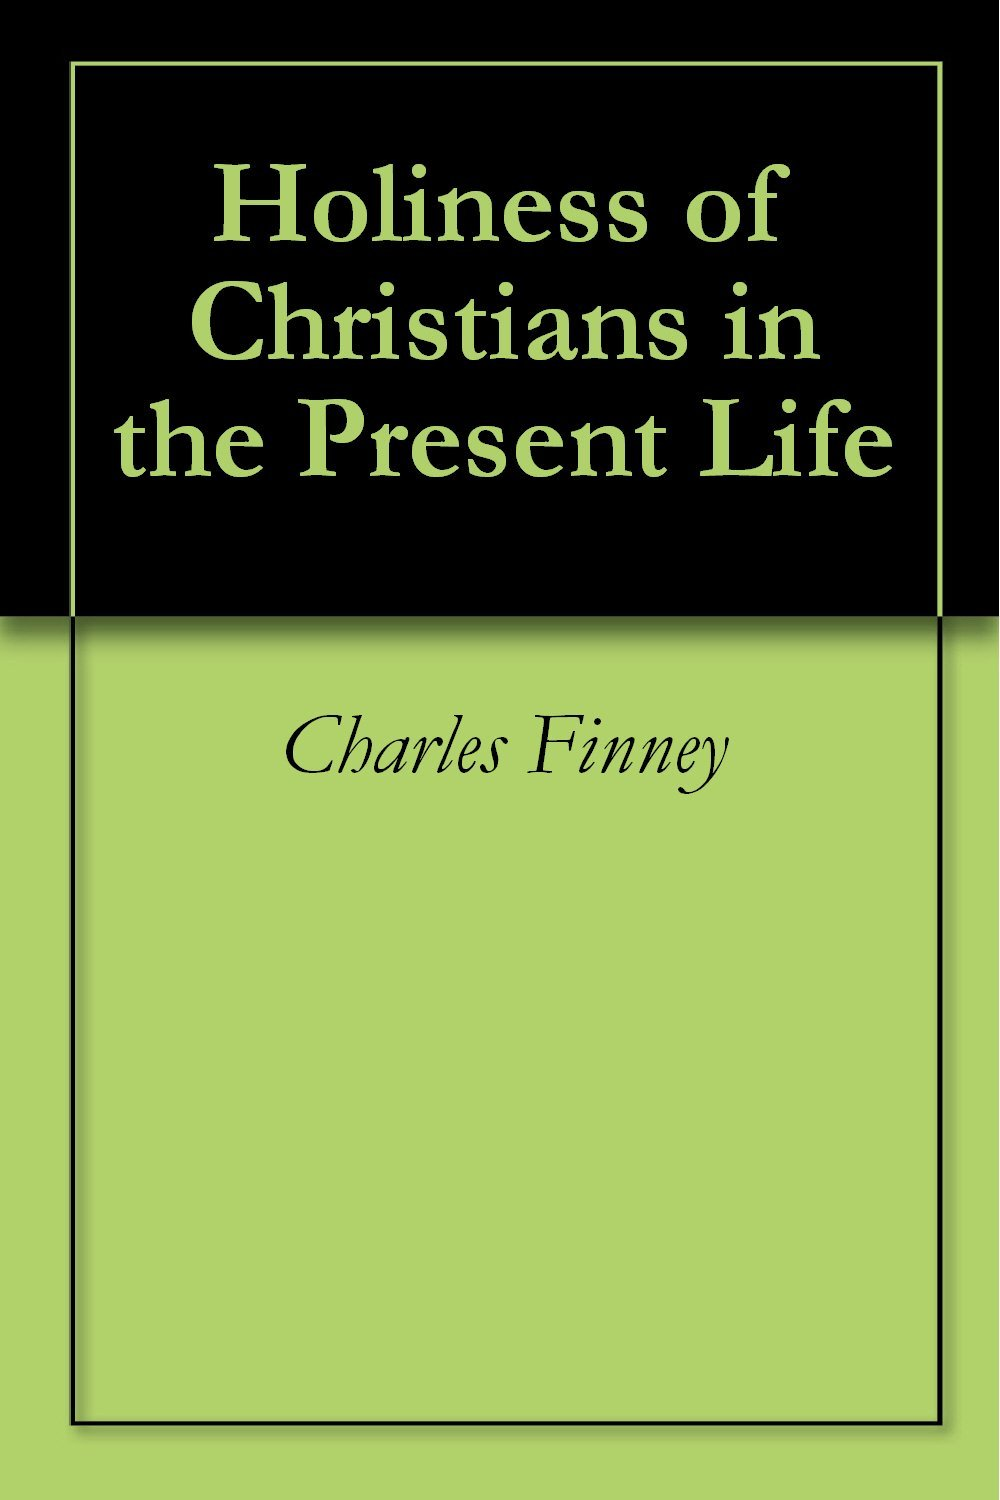 Charles G. Finney-Holiness Of Christians In The Present Life-